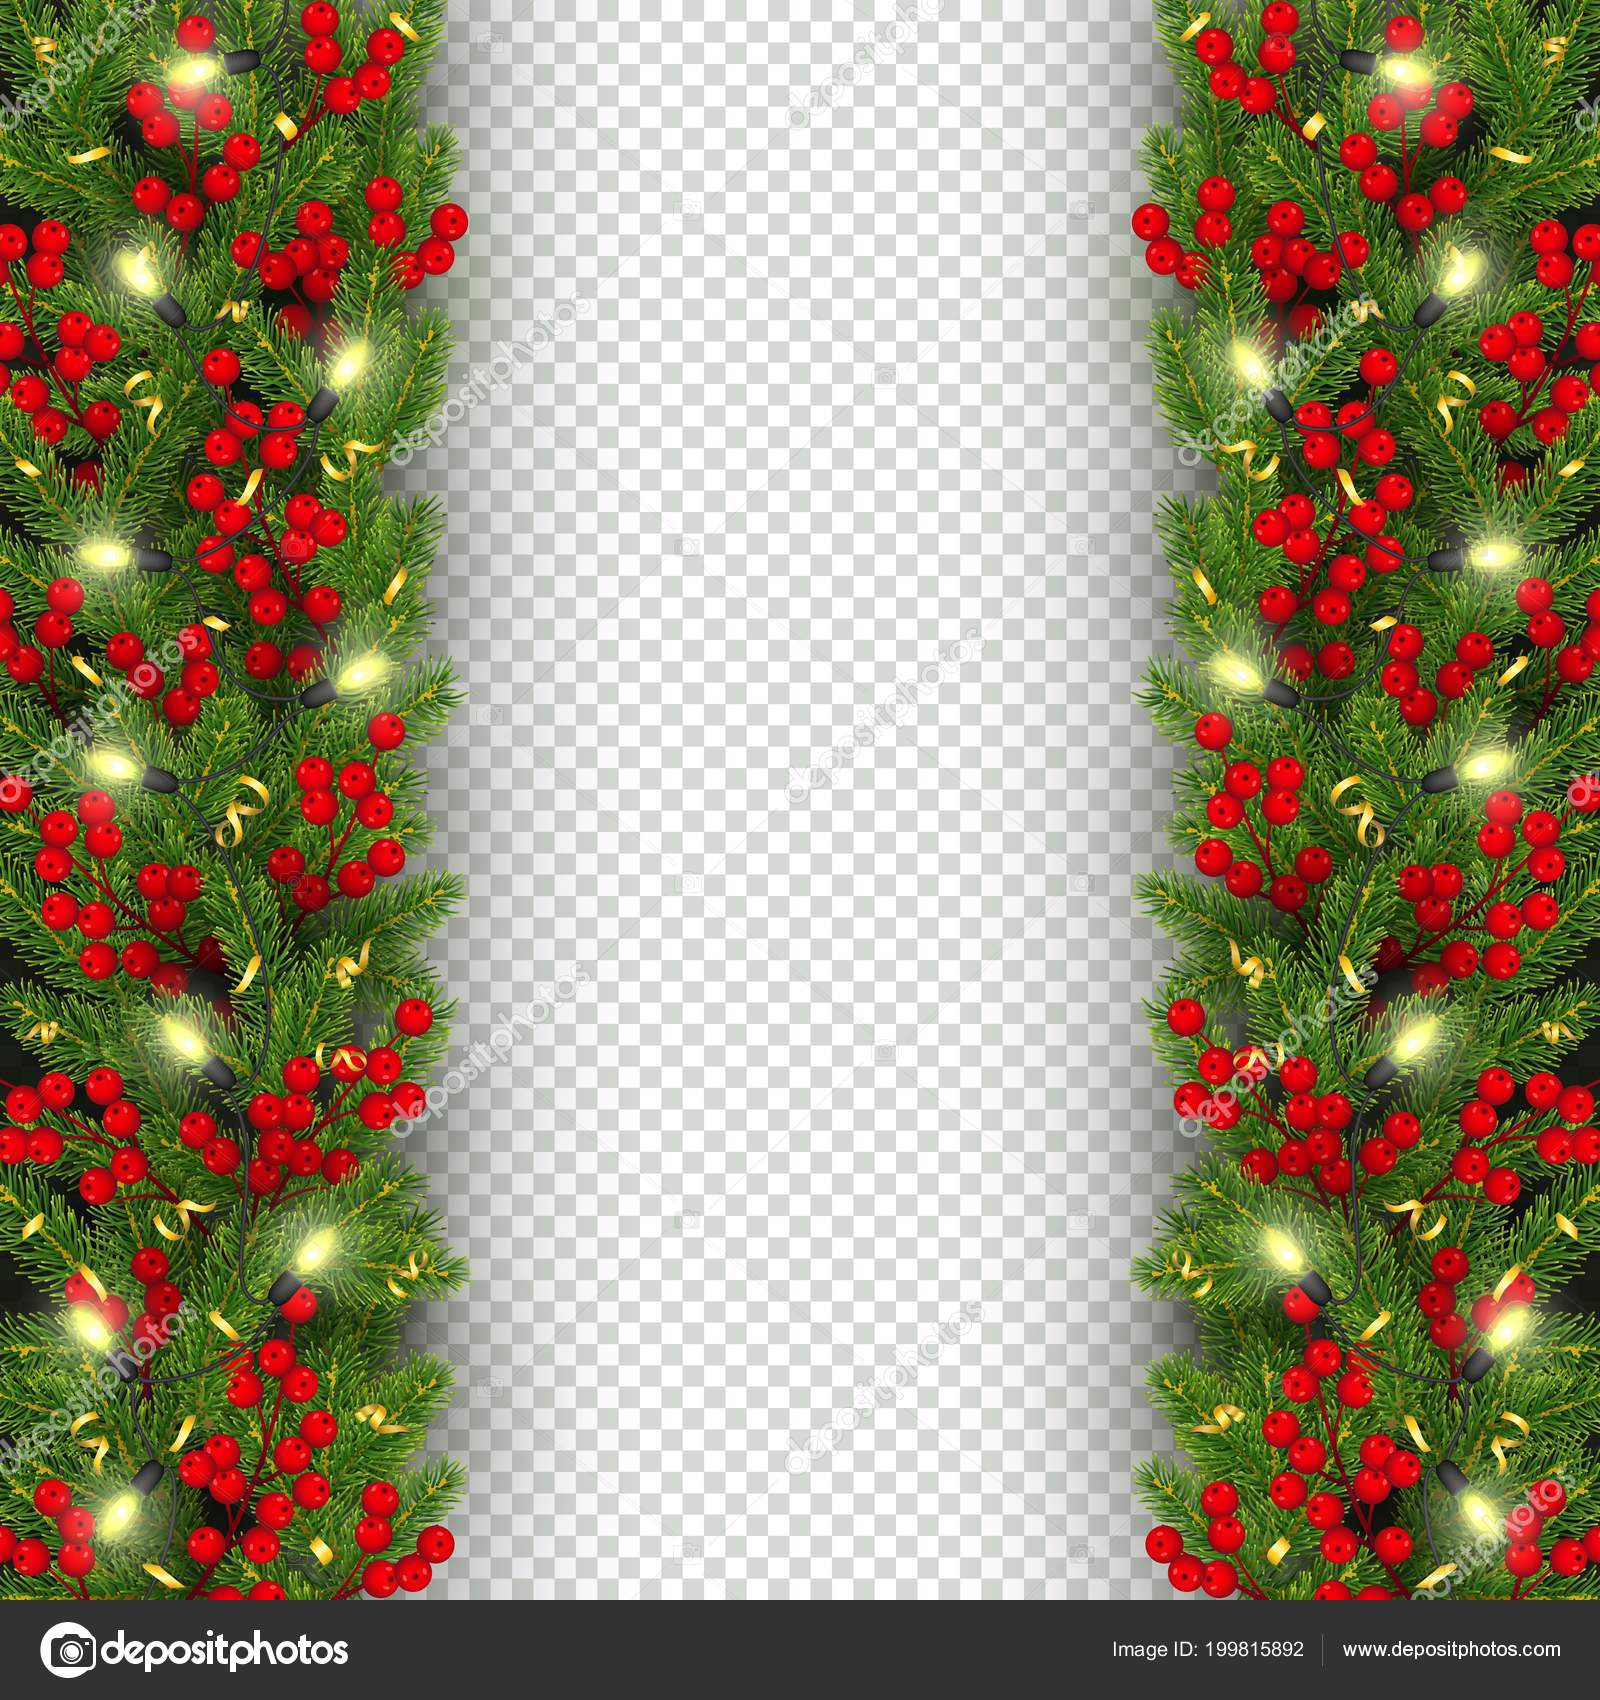 christmas and new year banner template realistic branches of christmas tree garland with glowing lightbulbs holly berries serpentine festive background